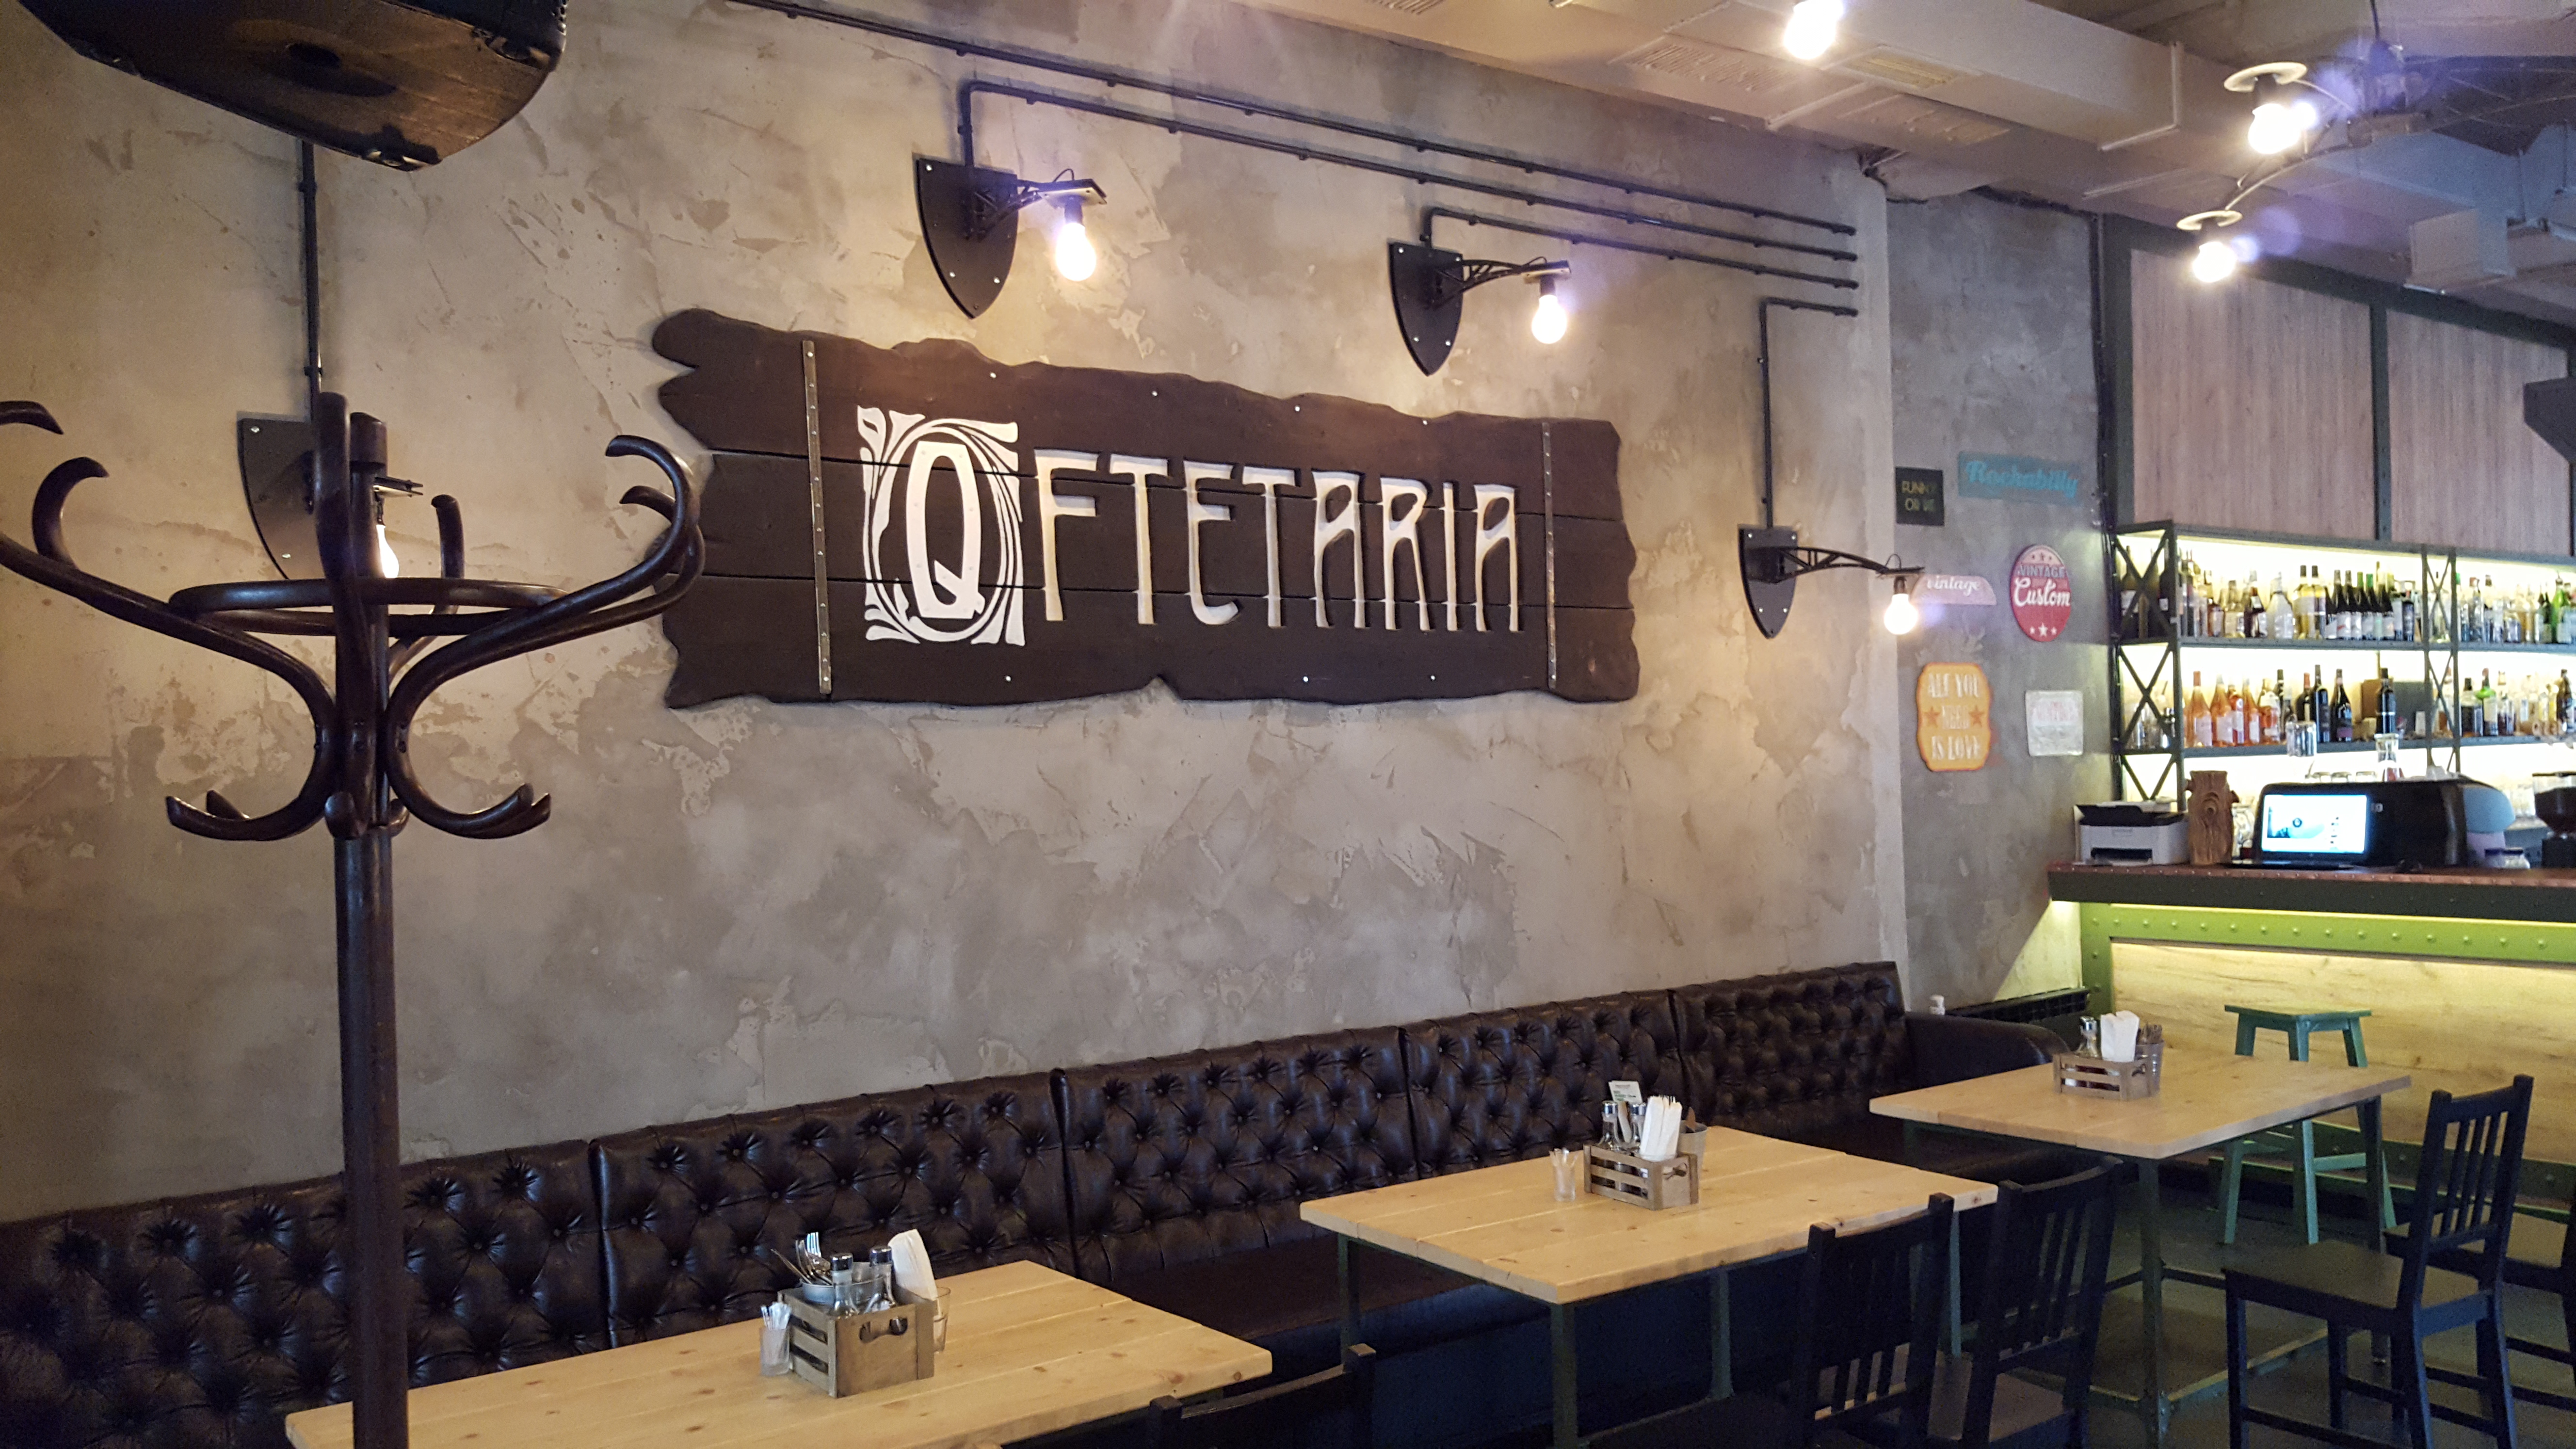 Tables at Q-ftetaria by placescases.com